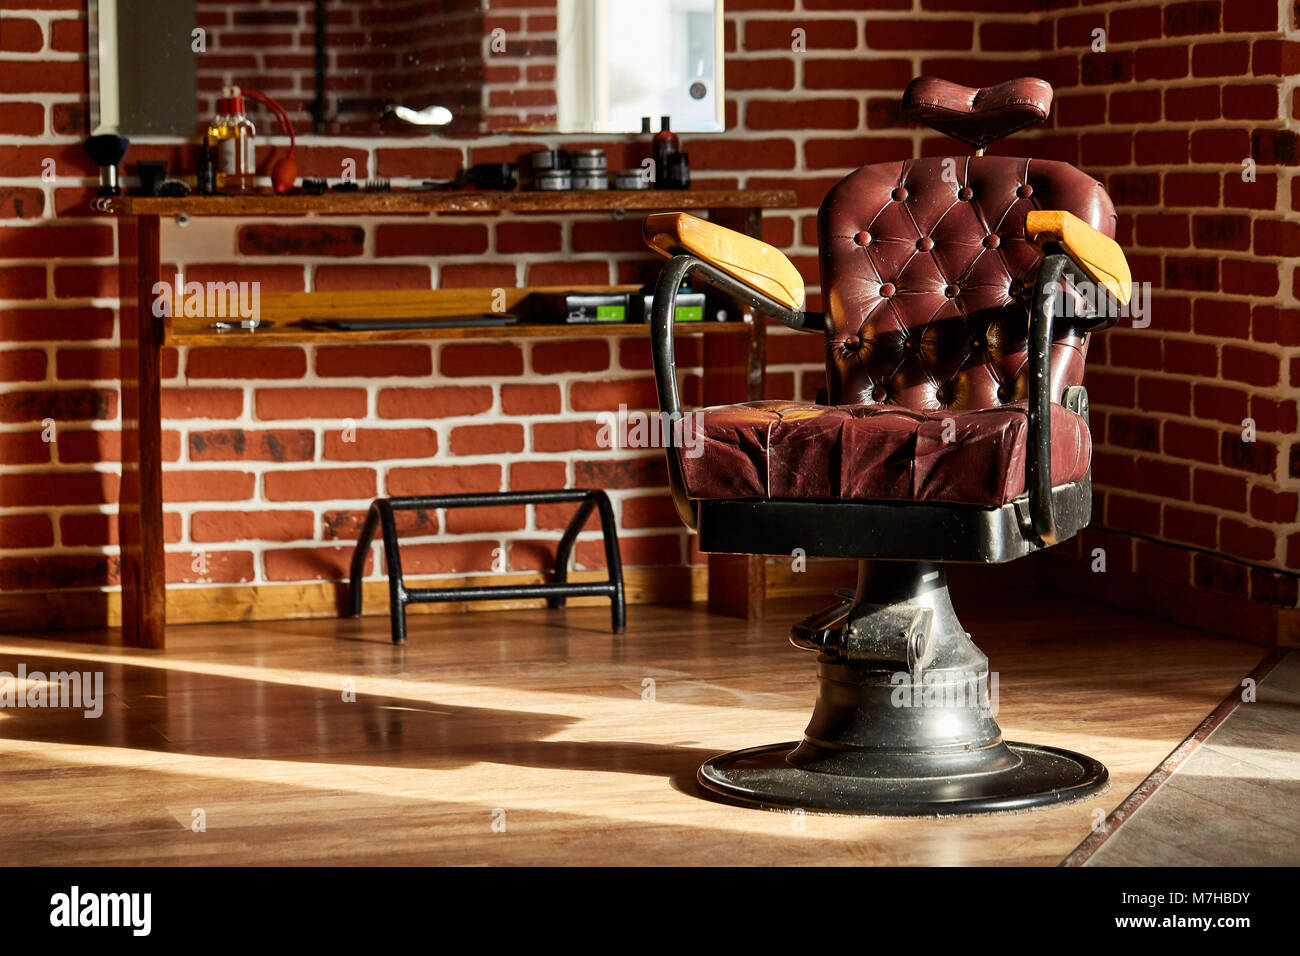 Barber Shop, Hairdresser Chairs Made From Brown Leather. Retro Leather Chair  Barber Shop In Vintage Style. Vintage Equipment. Male Beauty And Care. Gr